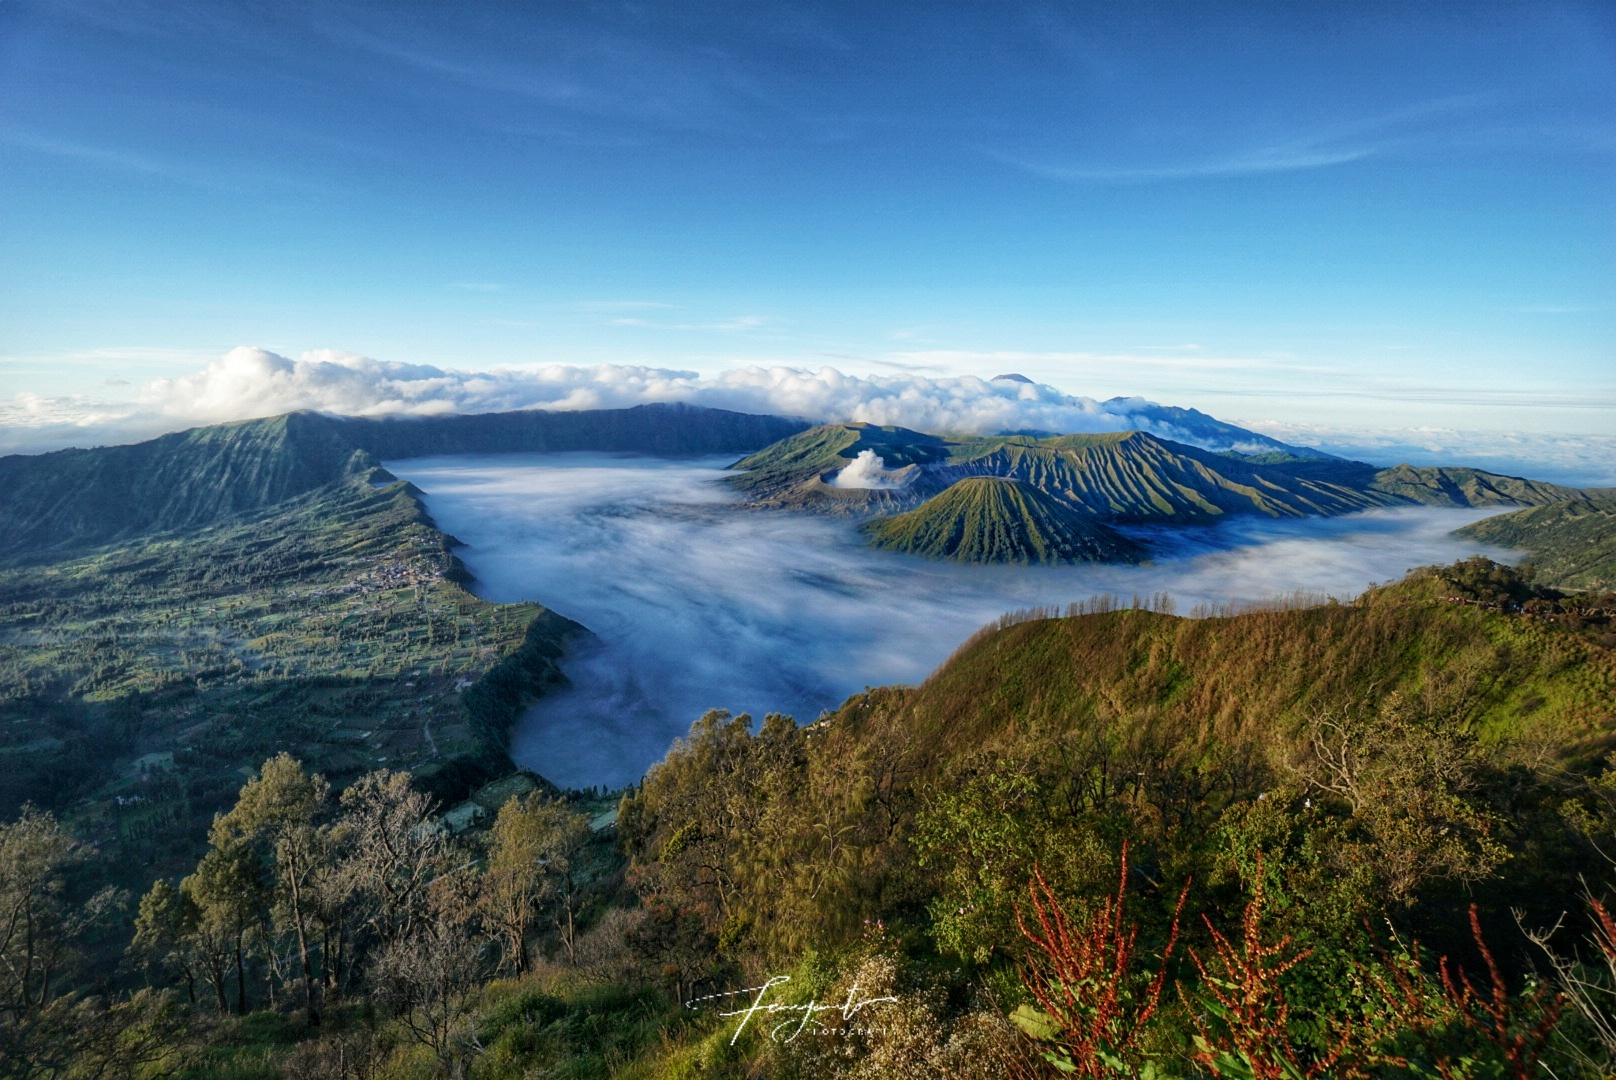 Bromo View form 'Penanjakan satu' Hill, Indonesia